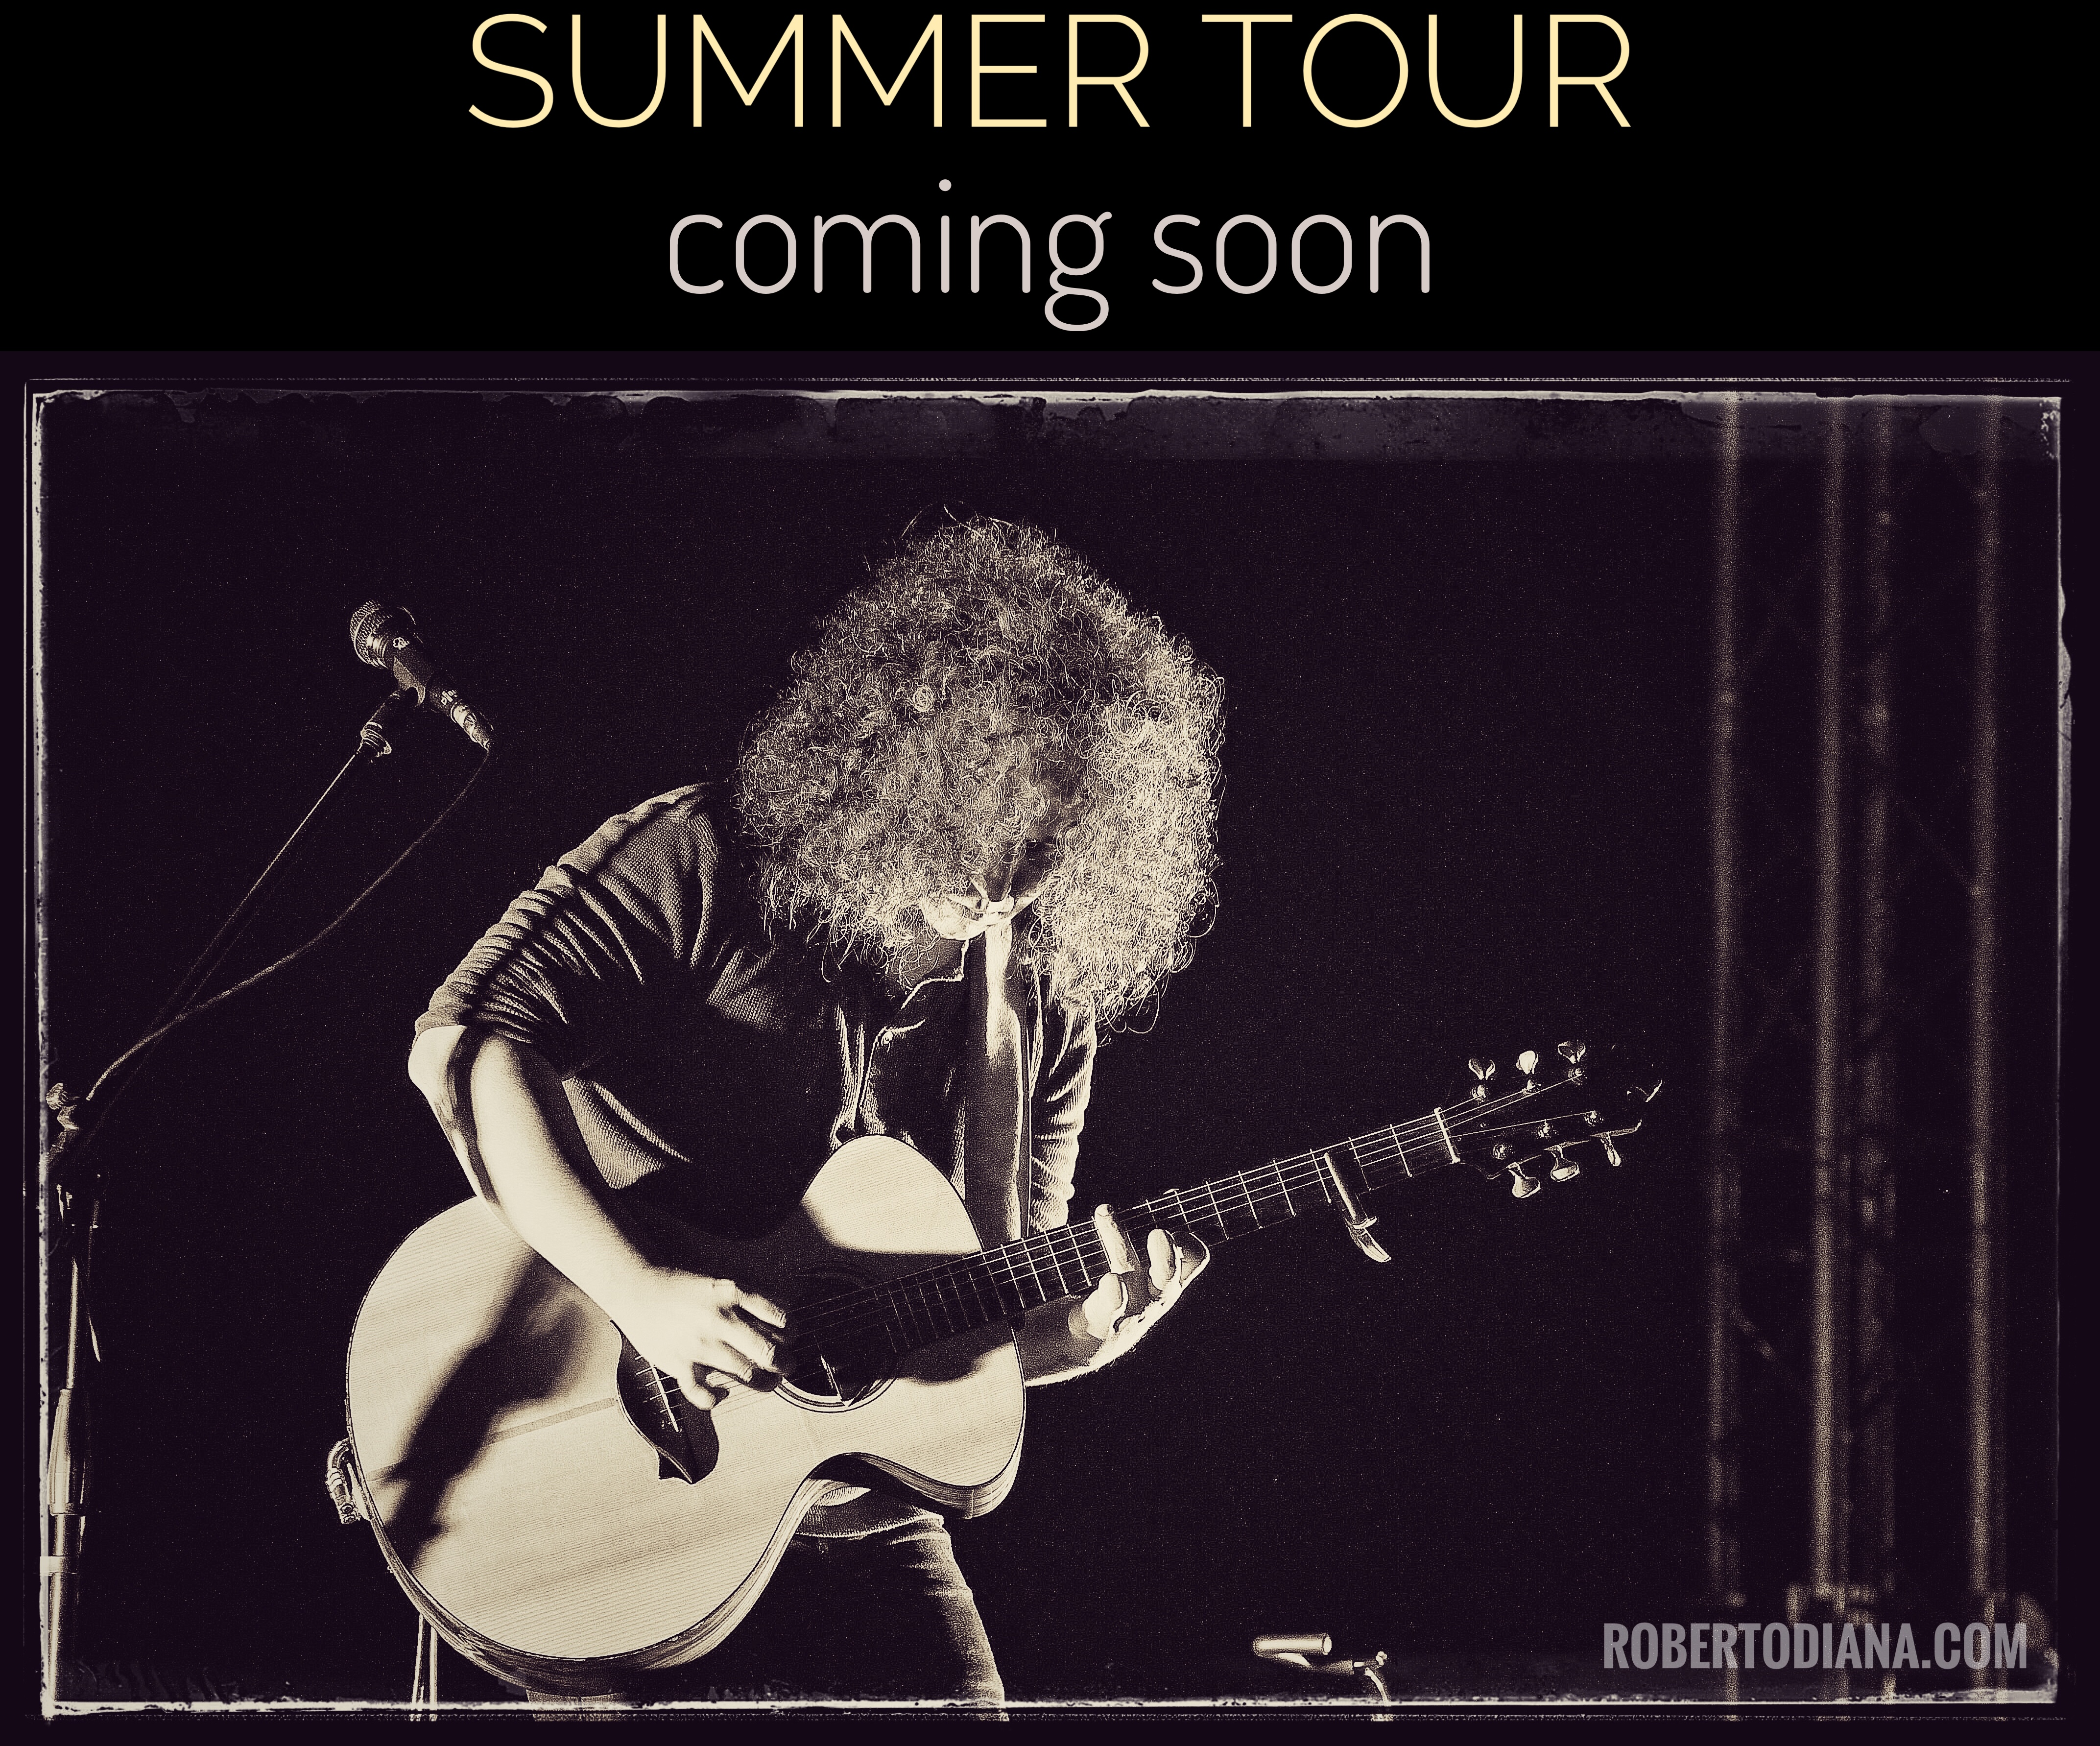 Summer Tour - coming soon